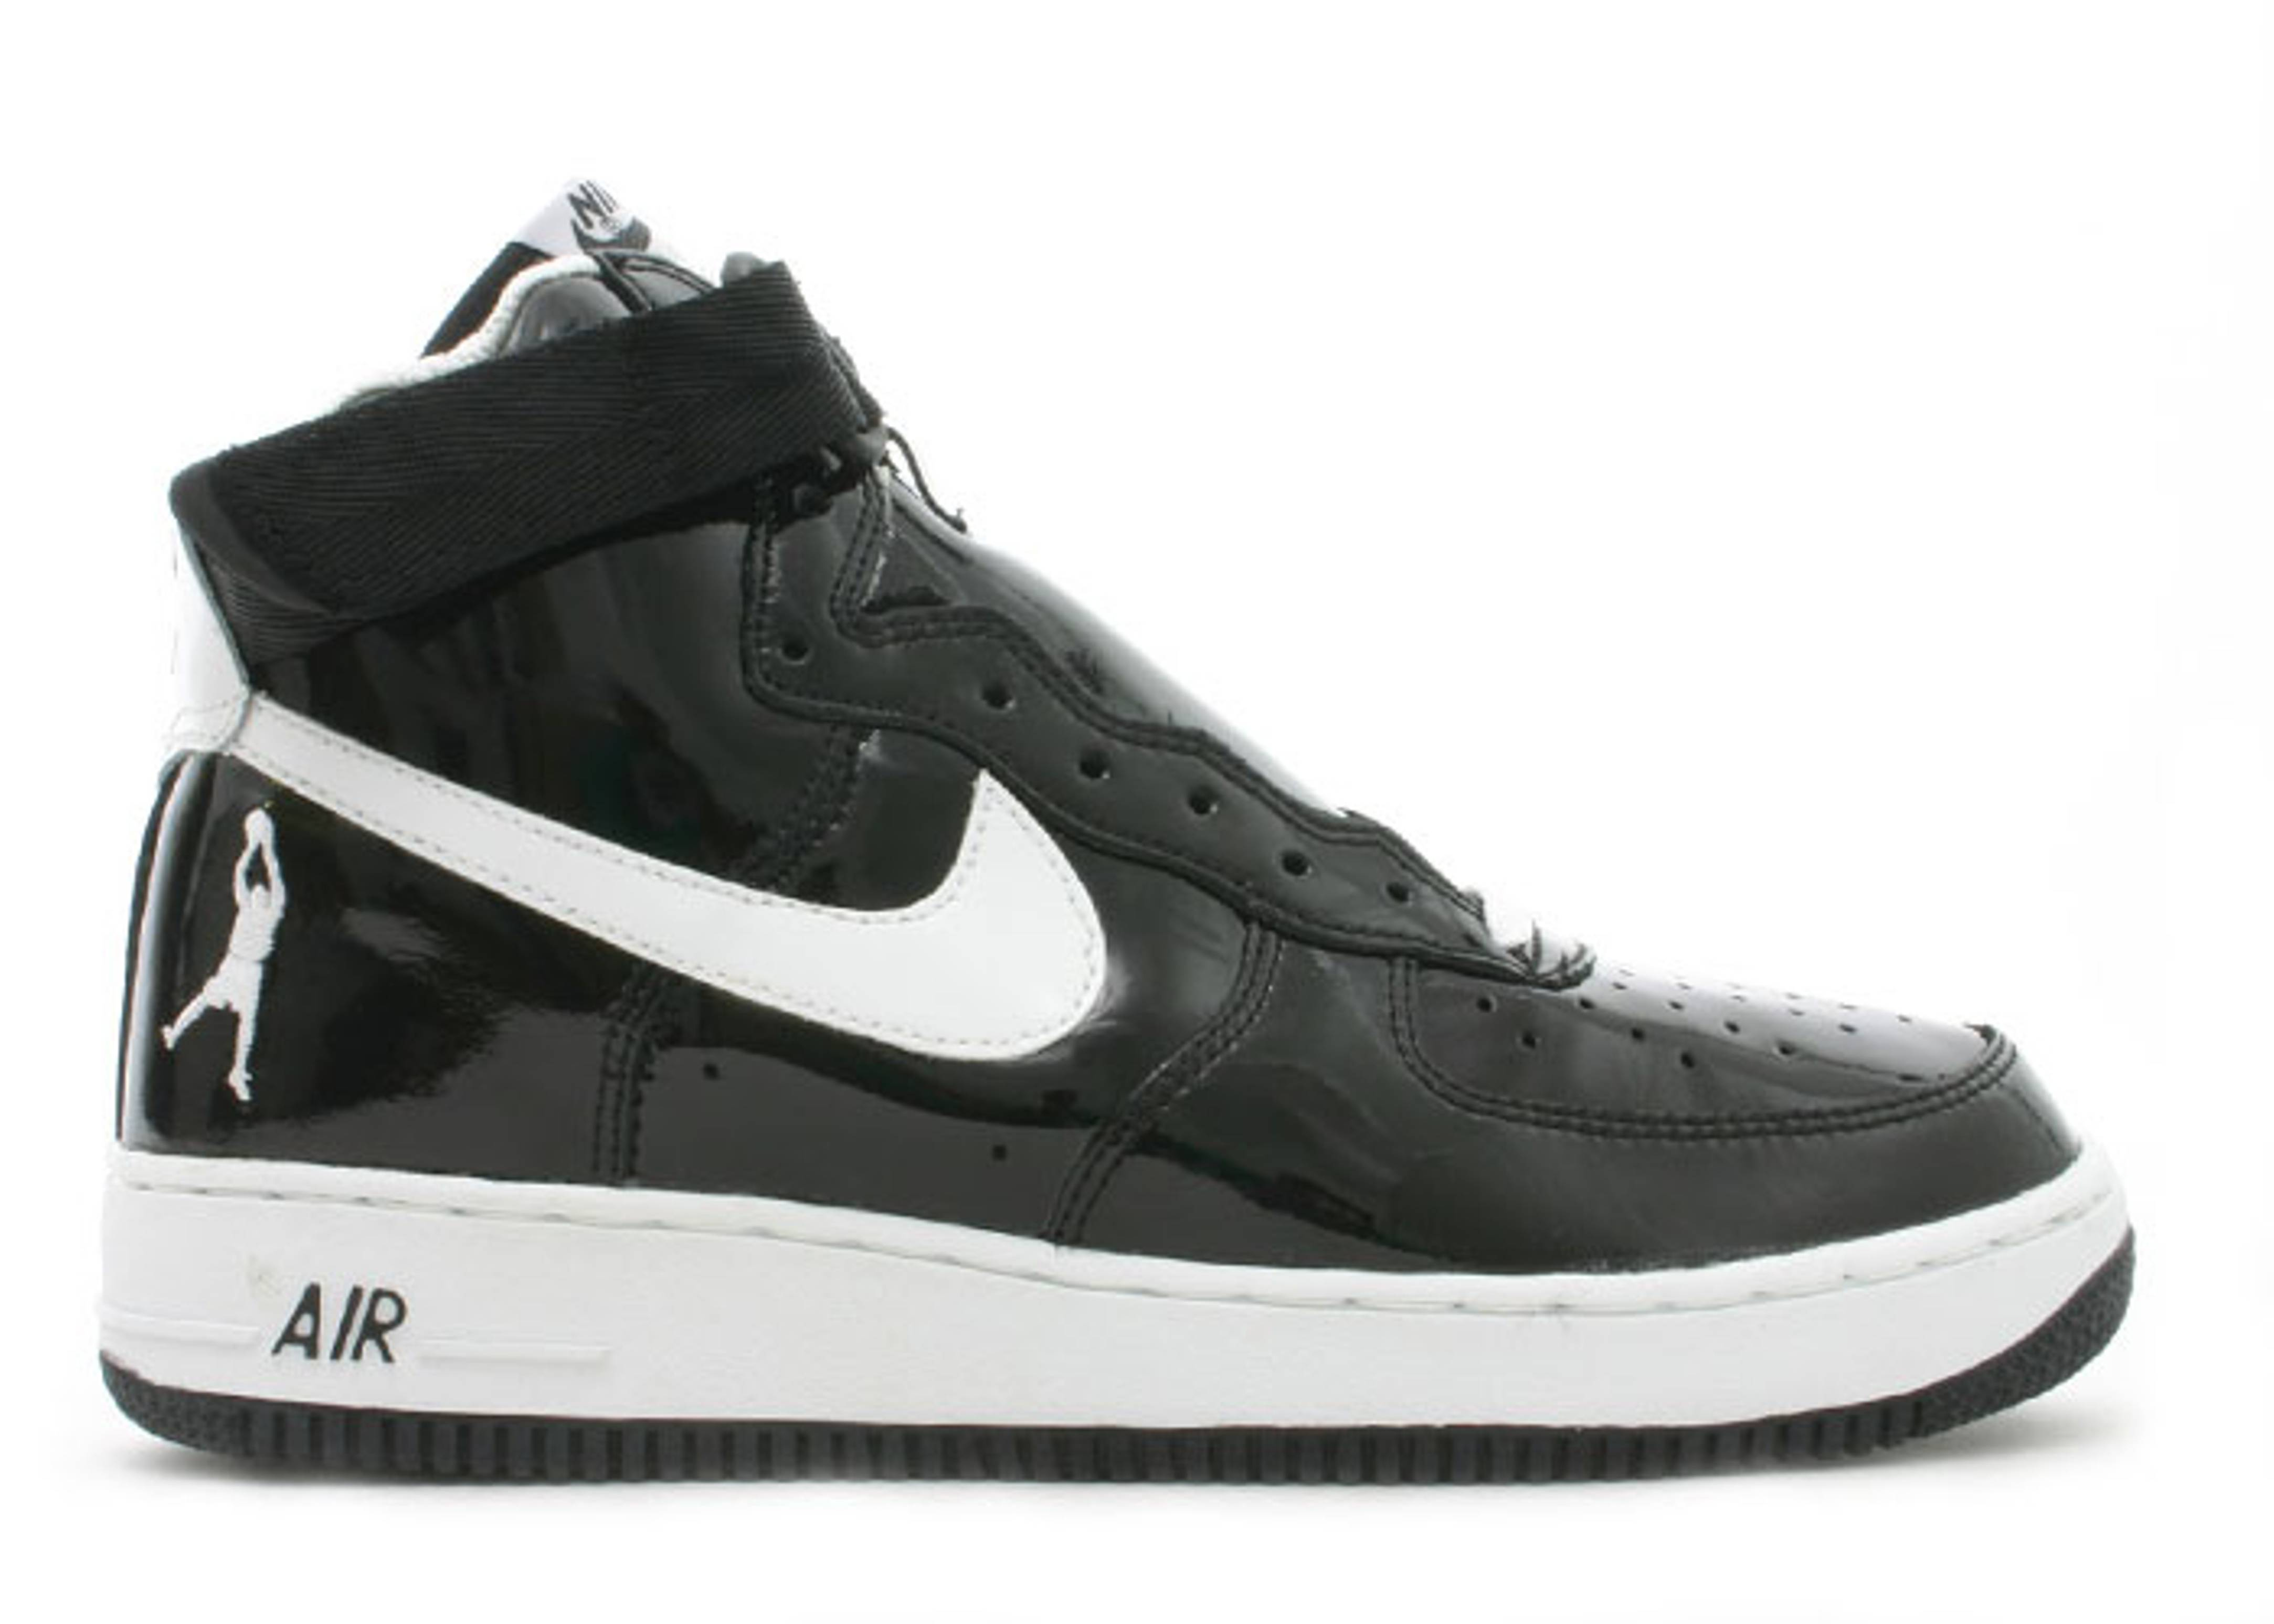 new product 0d677 46a02 usa nike air force 1 high sheed patent black white 0de5d 35f